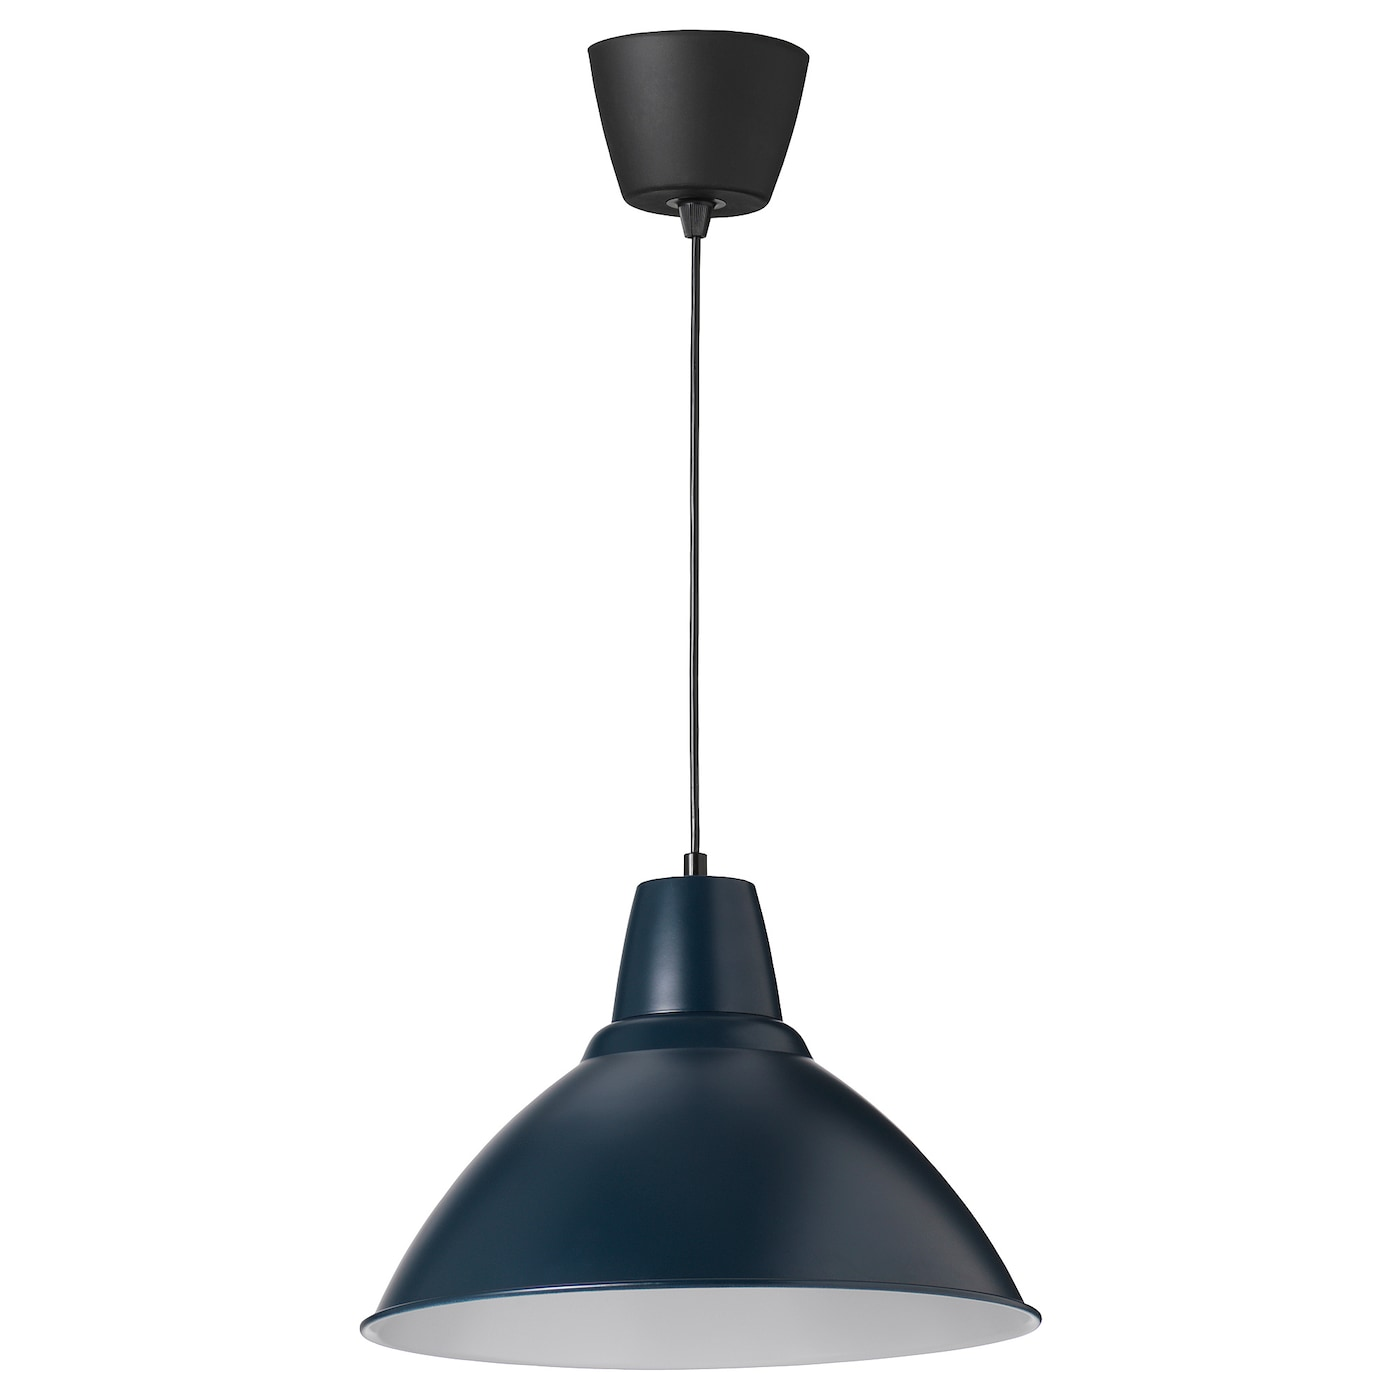 foto pendant lamp dark blue 38 cm ikea. Black Bedroom Furniture Sets. Home Design Ideas